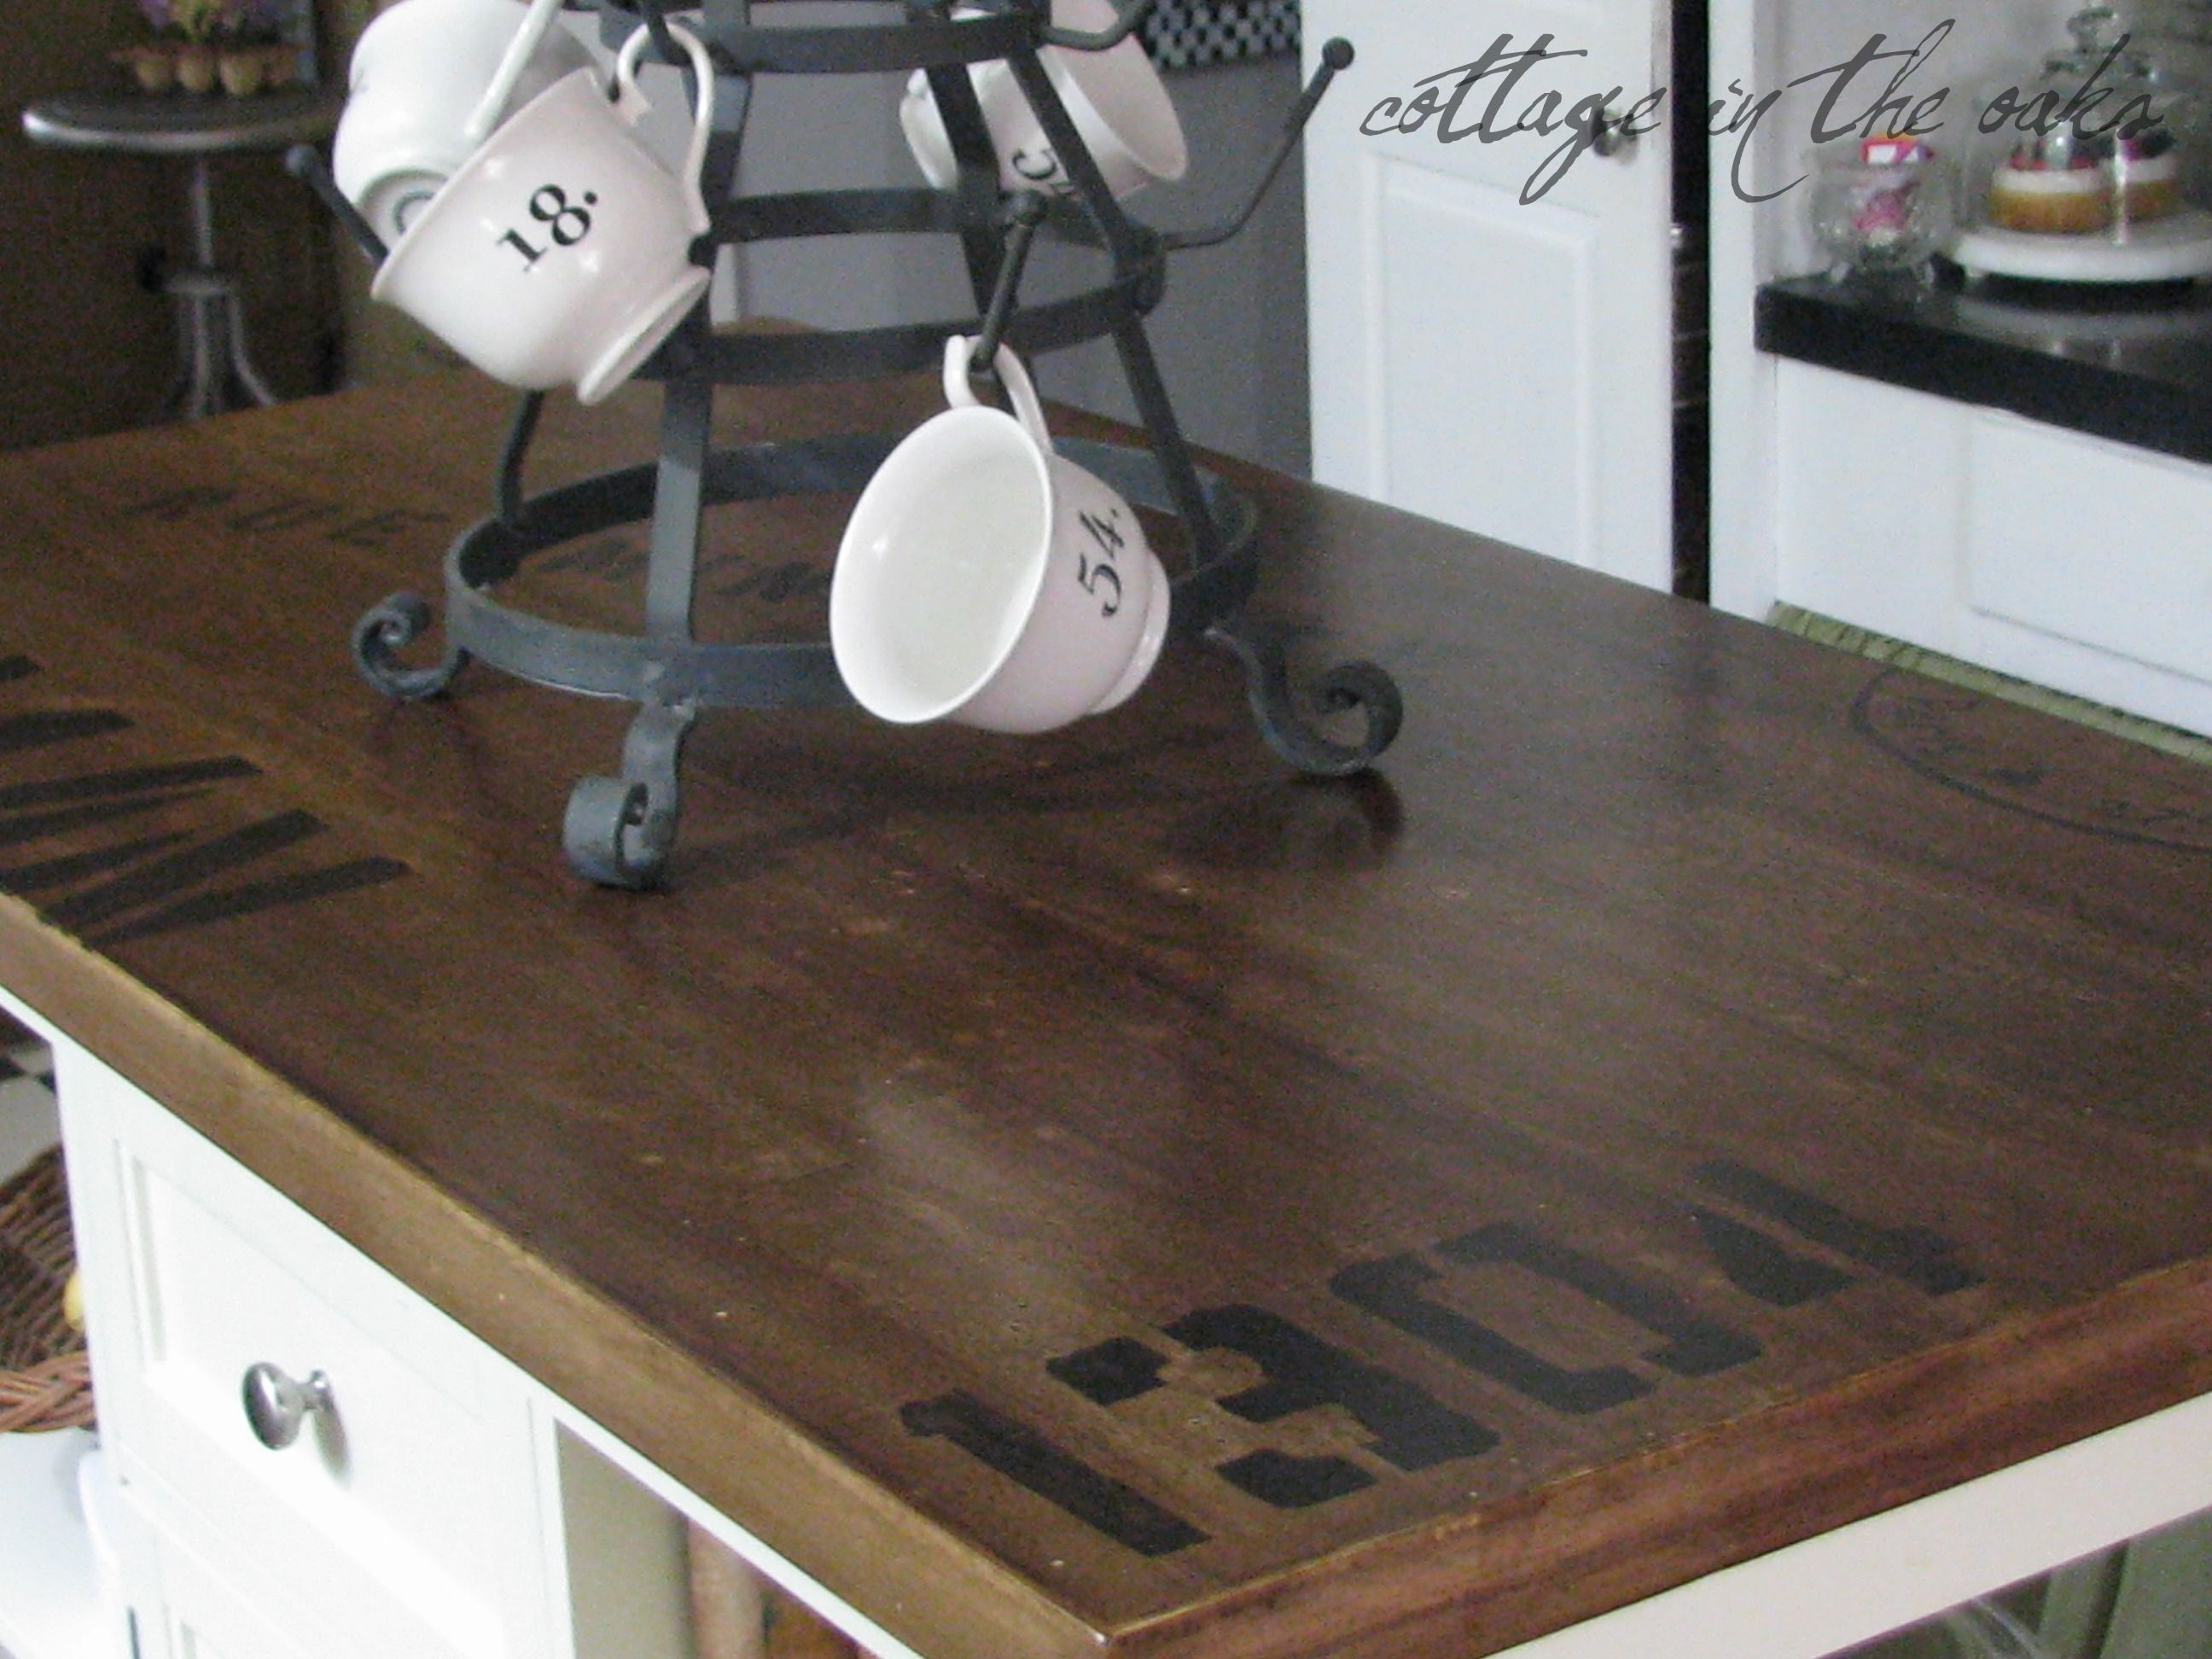 1000  images about Concrete counter top on Pinterest   Stains  Polished  concrete countertops and Islands. 1000  images about Concrete counter top on Pinterest   Stains